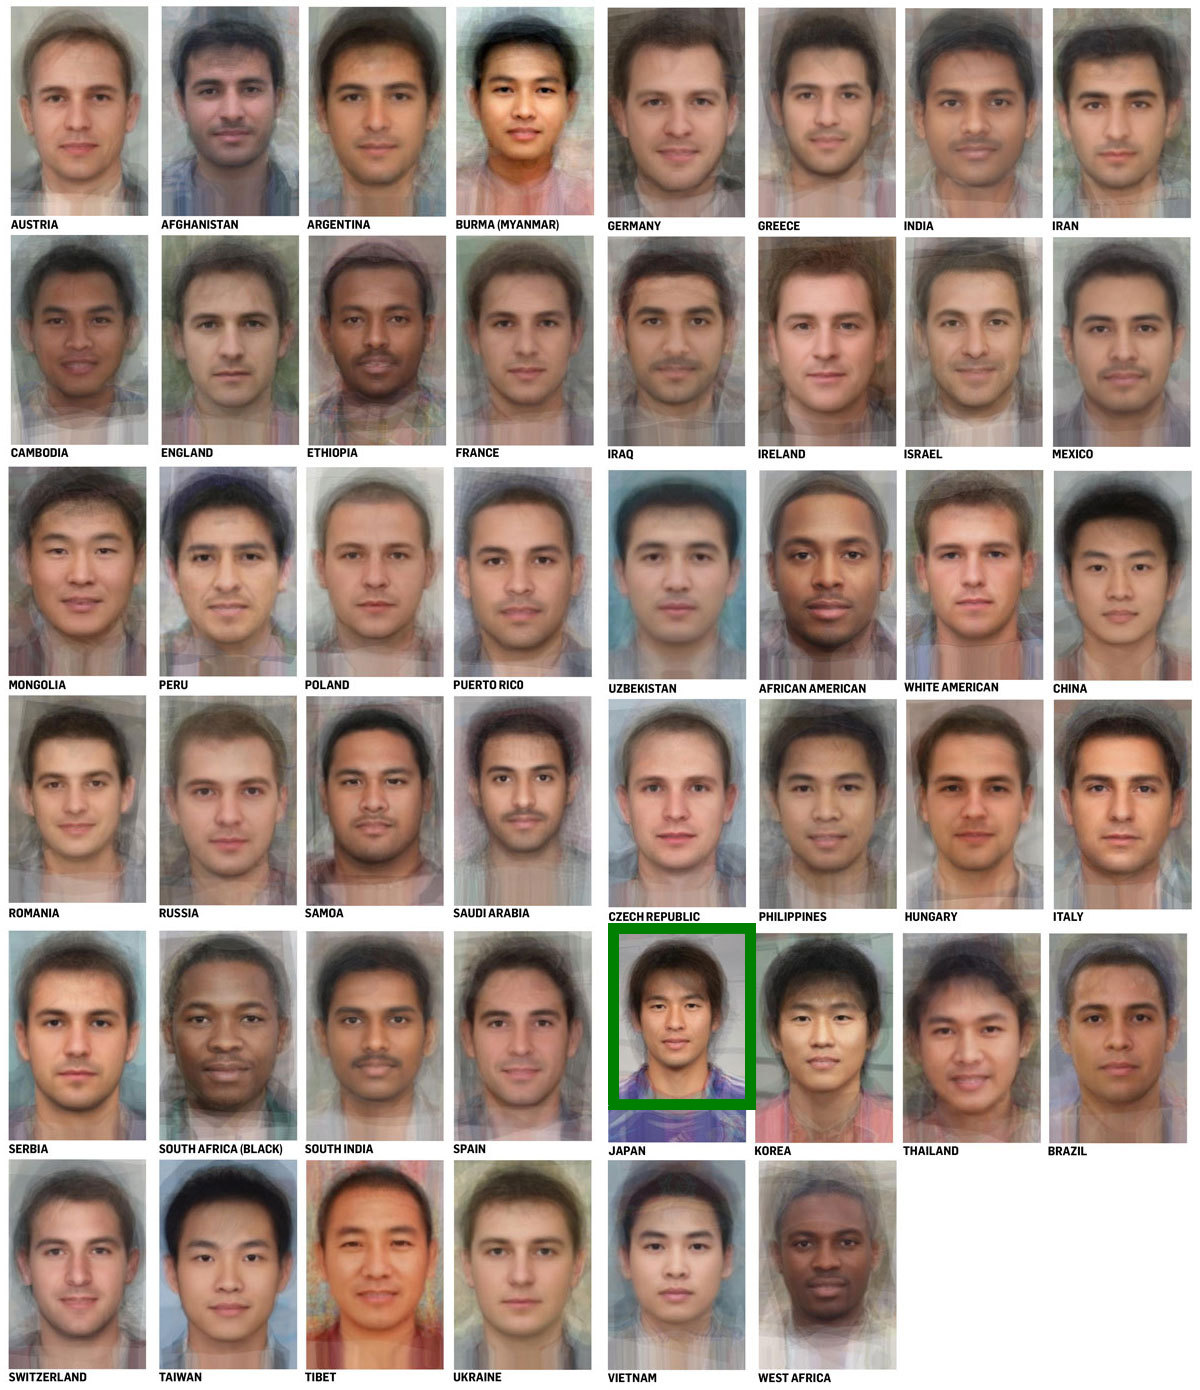 Can a person-specific face recognition algorithm be used to